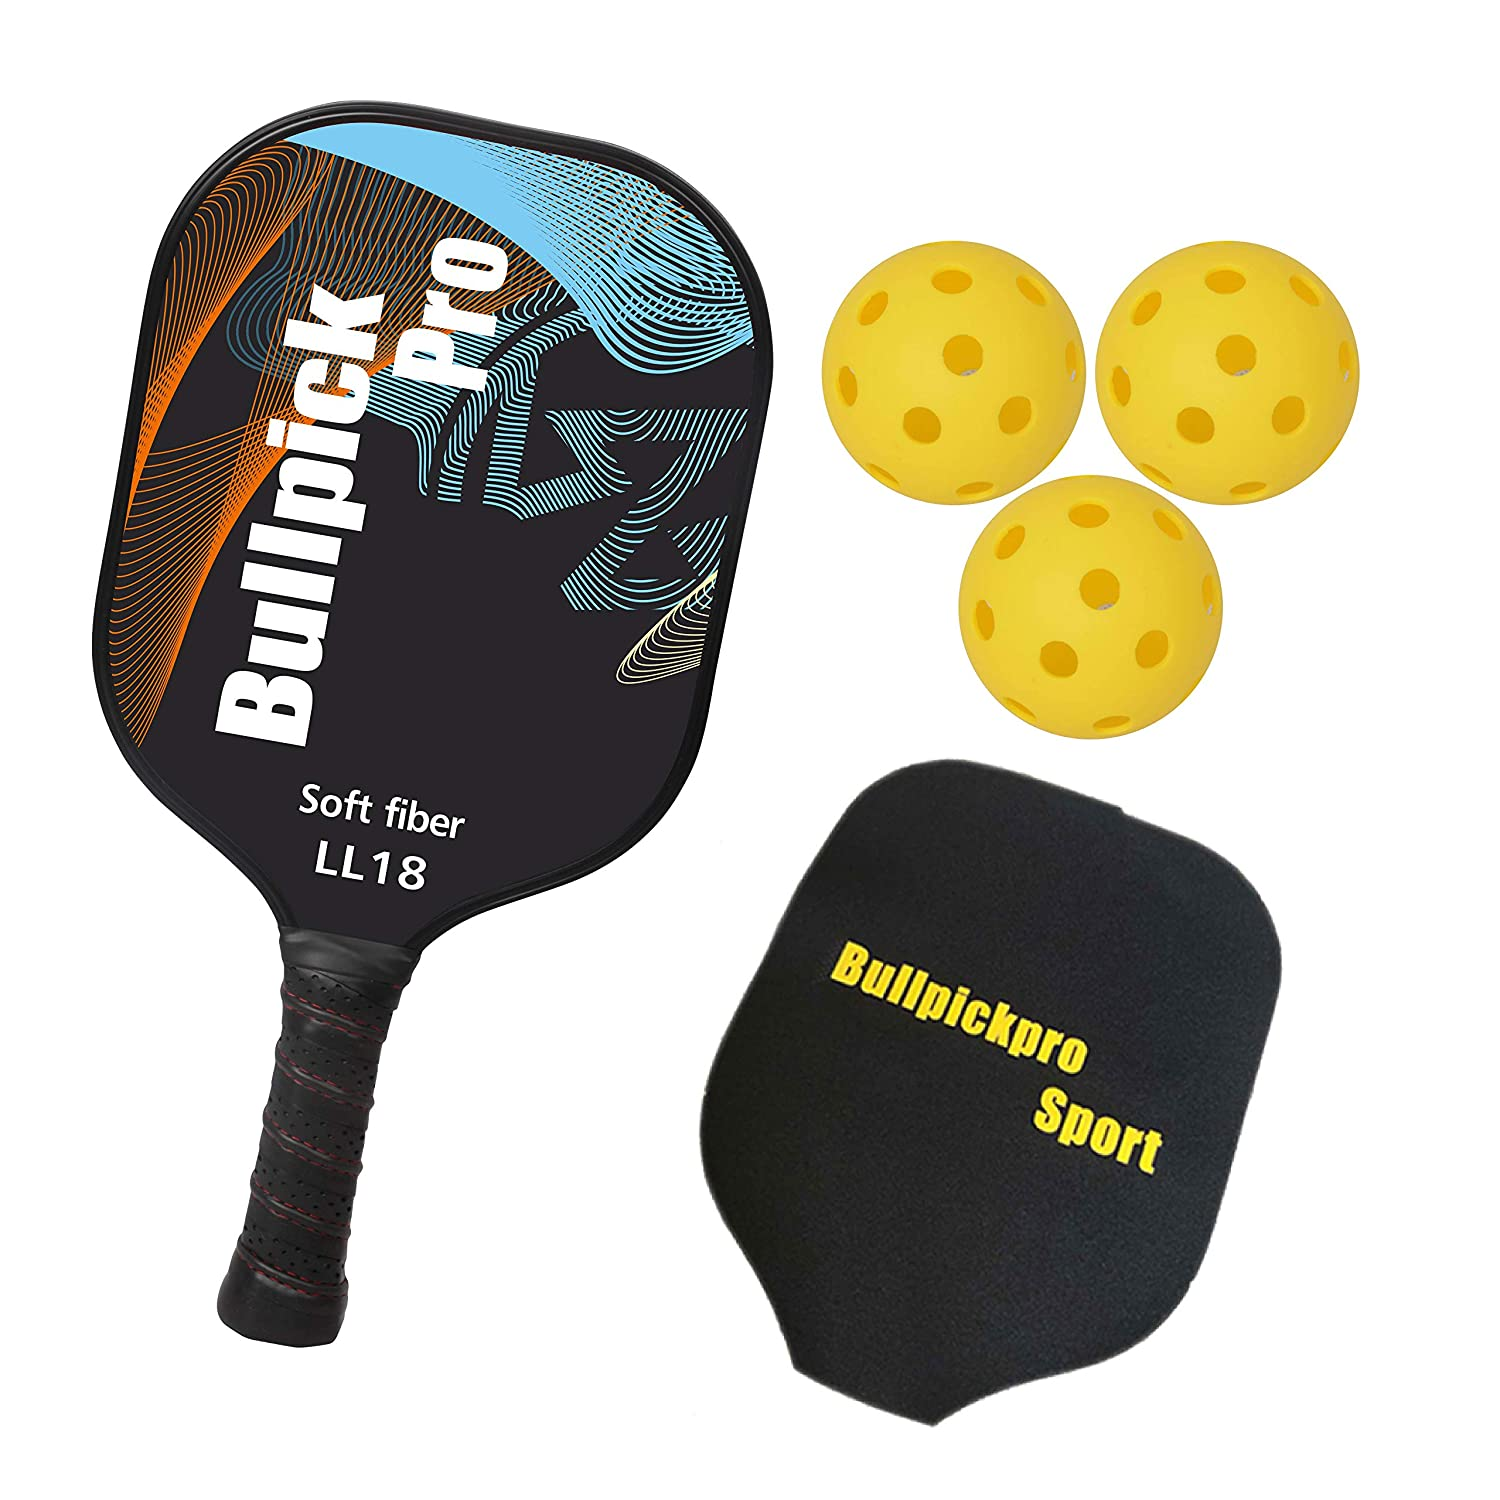 Bullpickpro Pickleball Paddle Set